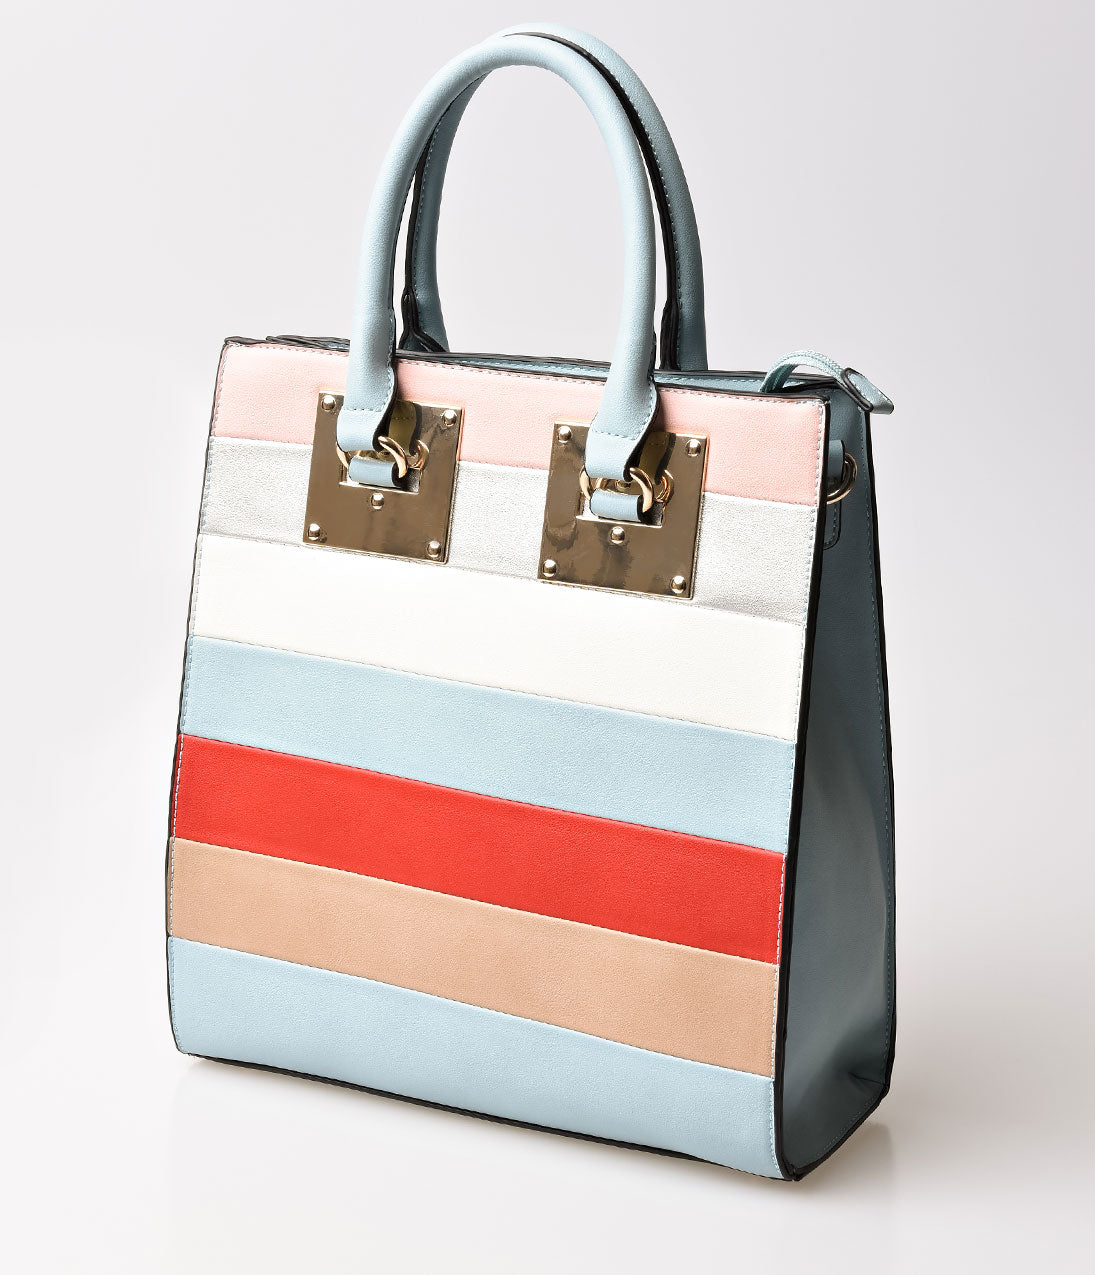 Vintage & Retro Handbags, Purses, Wallets, Bags Light Blue  Stripe Leatherette Structured Handbag $36.00 AT vintagedancer.com